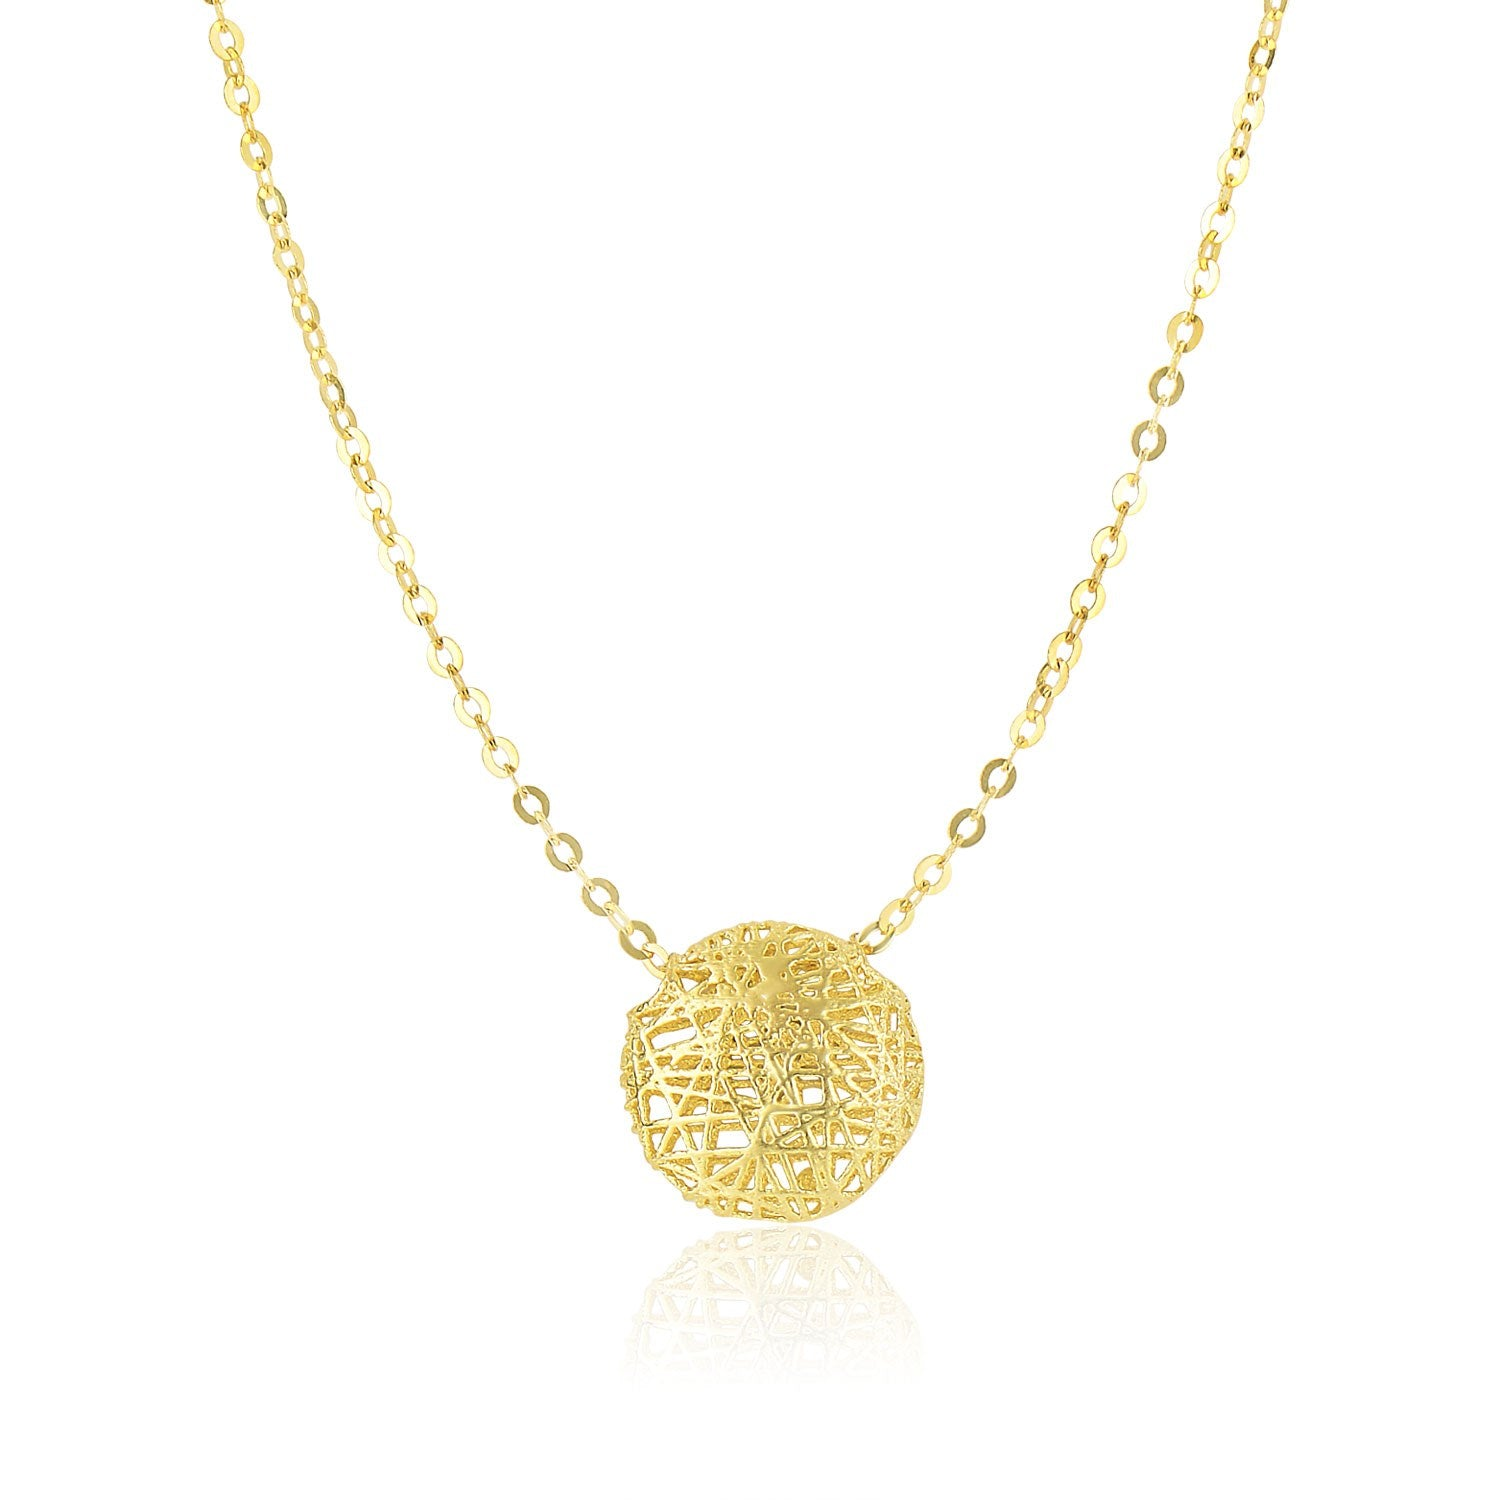 14K Yellow Gold Mesh Style Puffed Round Necklace